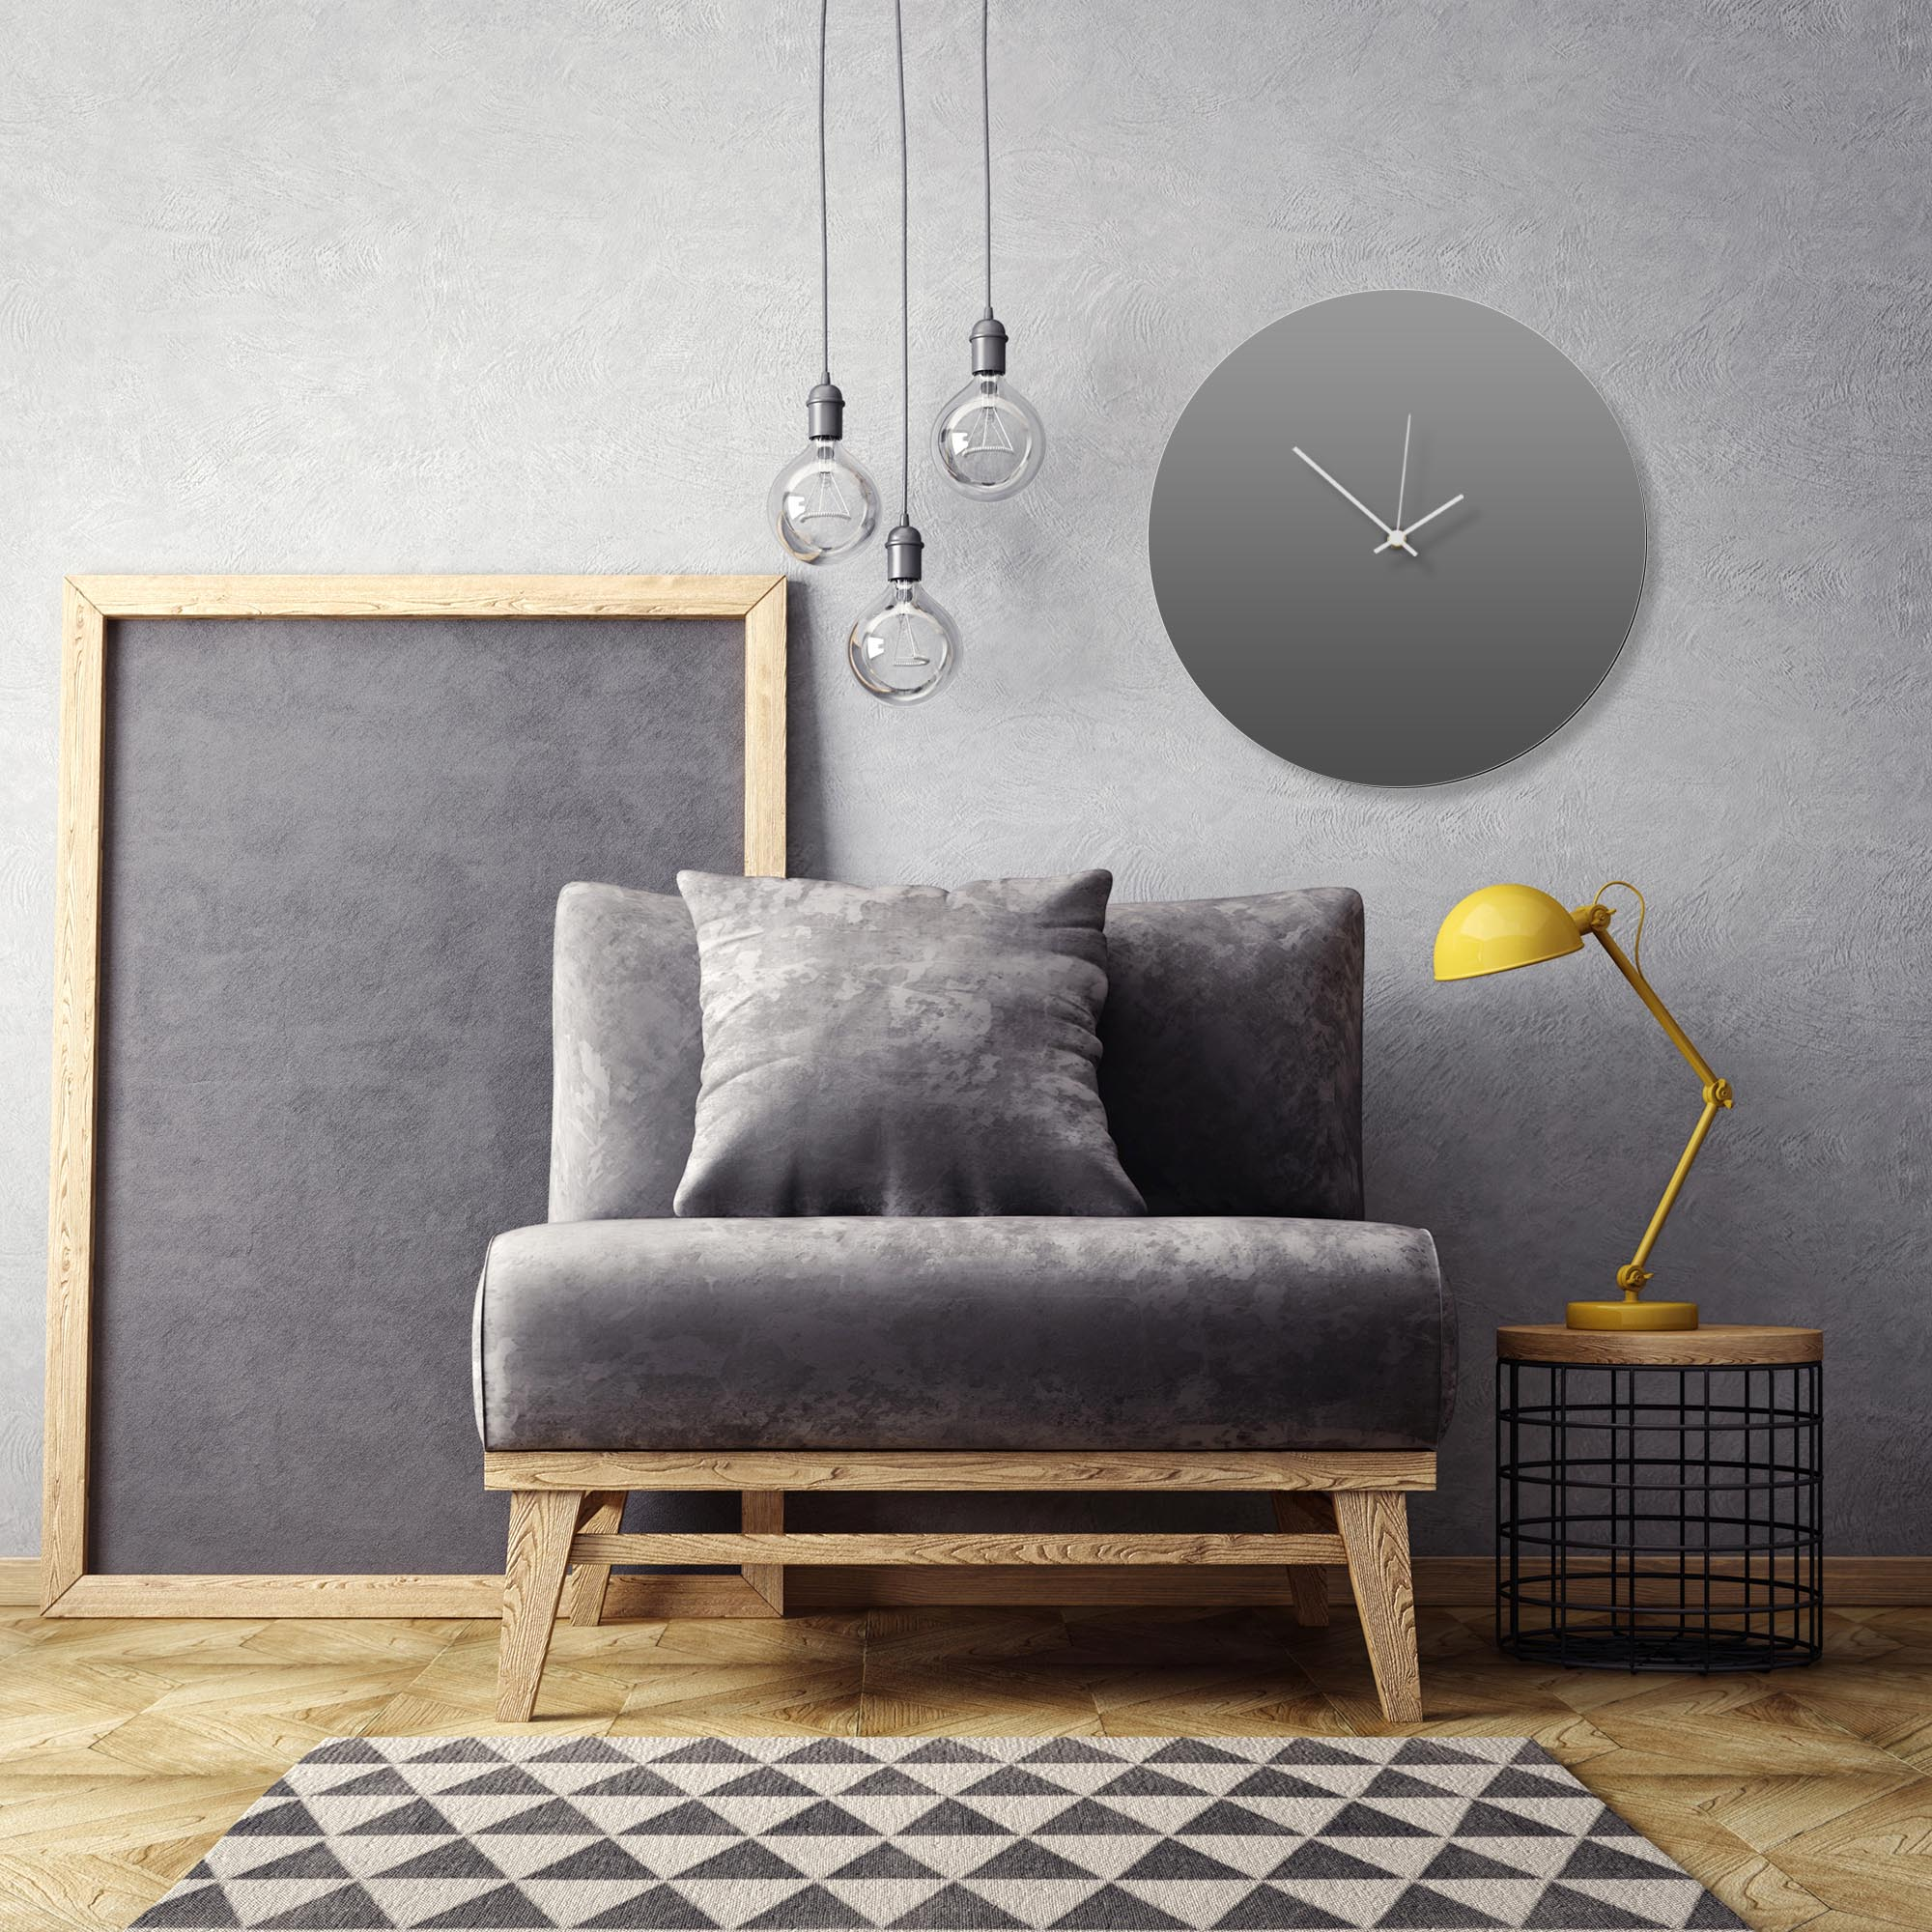 Grayout White Circle Clock Large by Adam Schwoeppe Contemporary Clock on Aluminum Polymetal - Alternate View 1